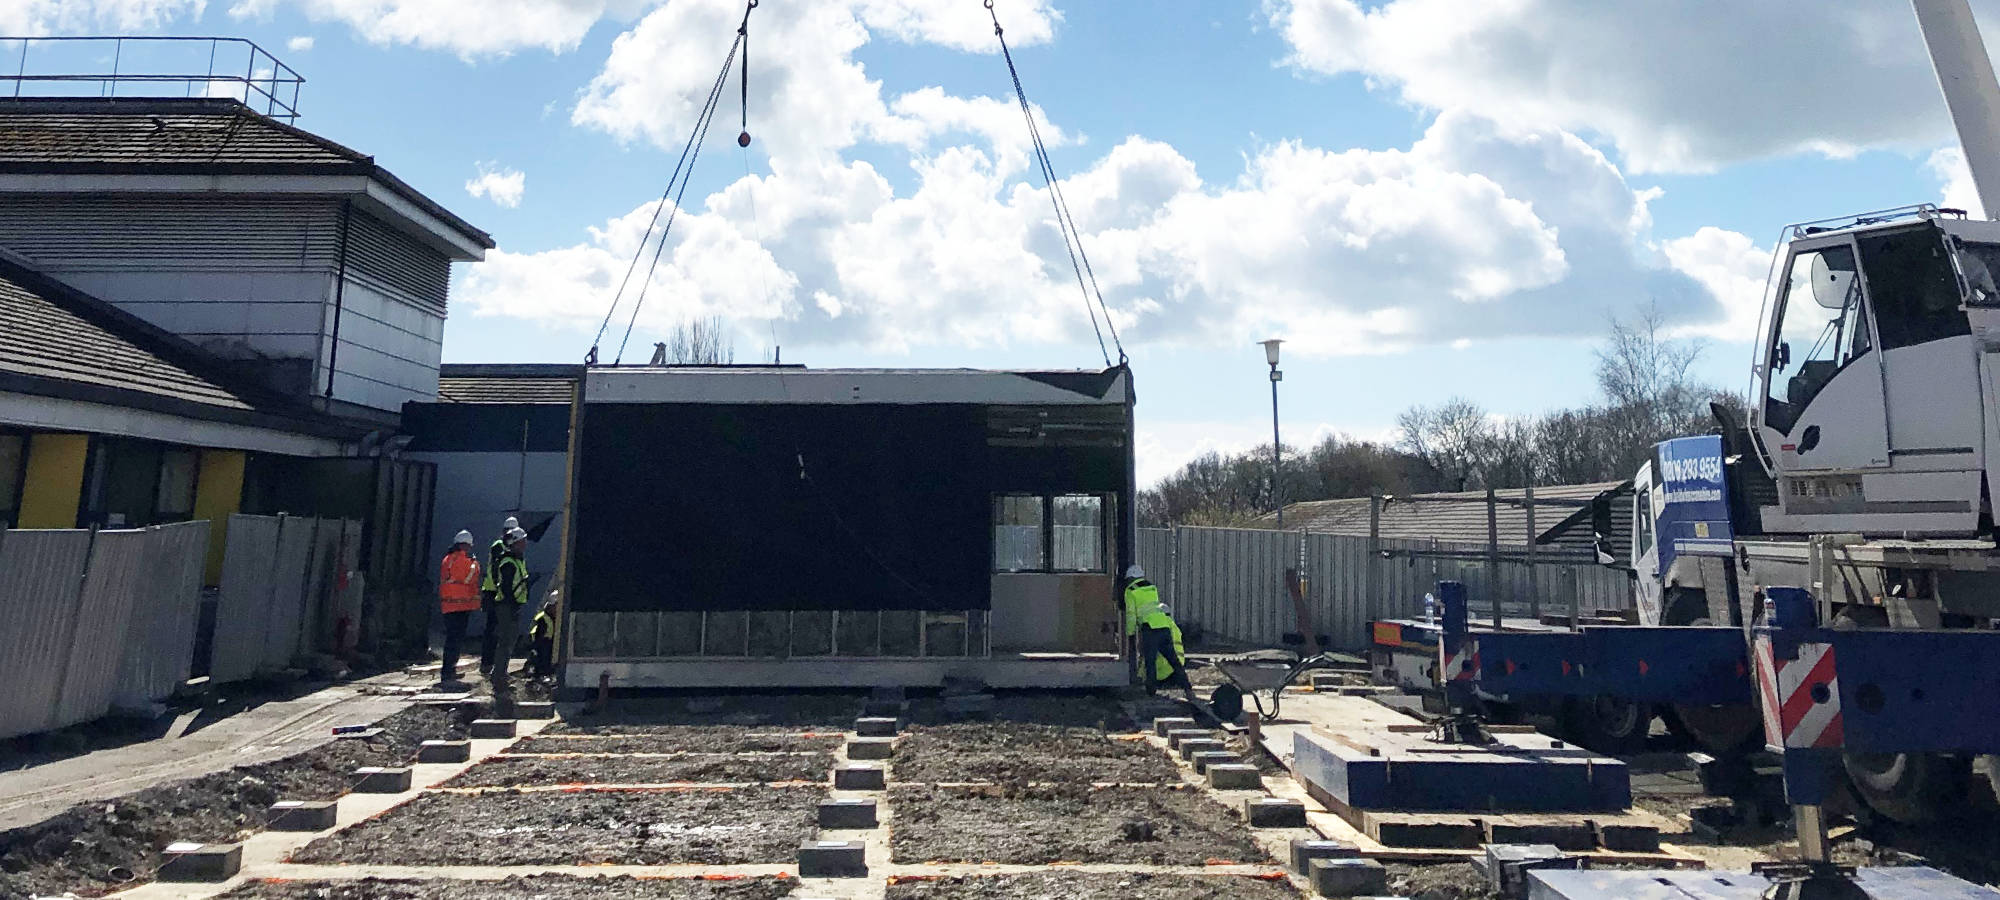 Construction of the two MRI imaging facility by Imaging Matters